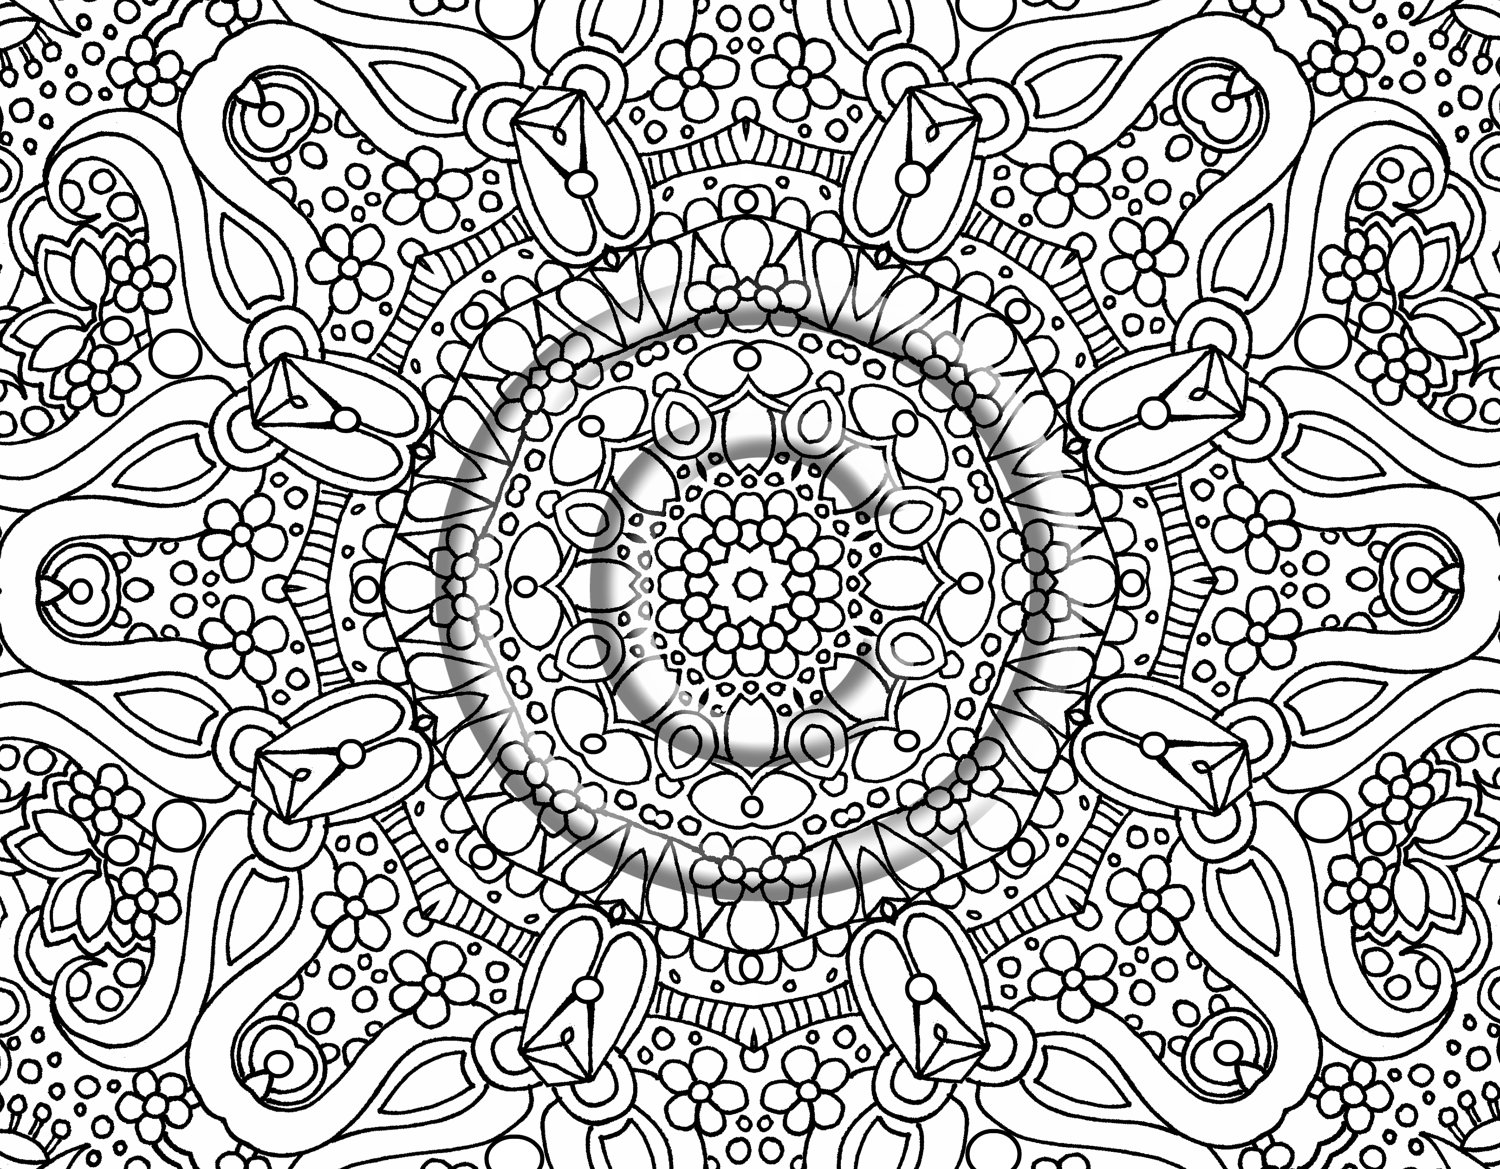 Abstract coloring #5, Download drawings